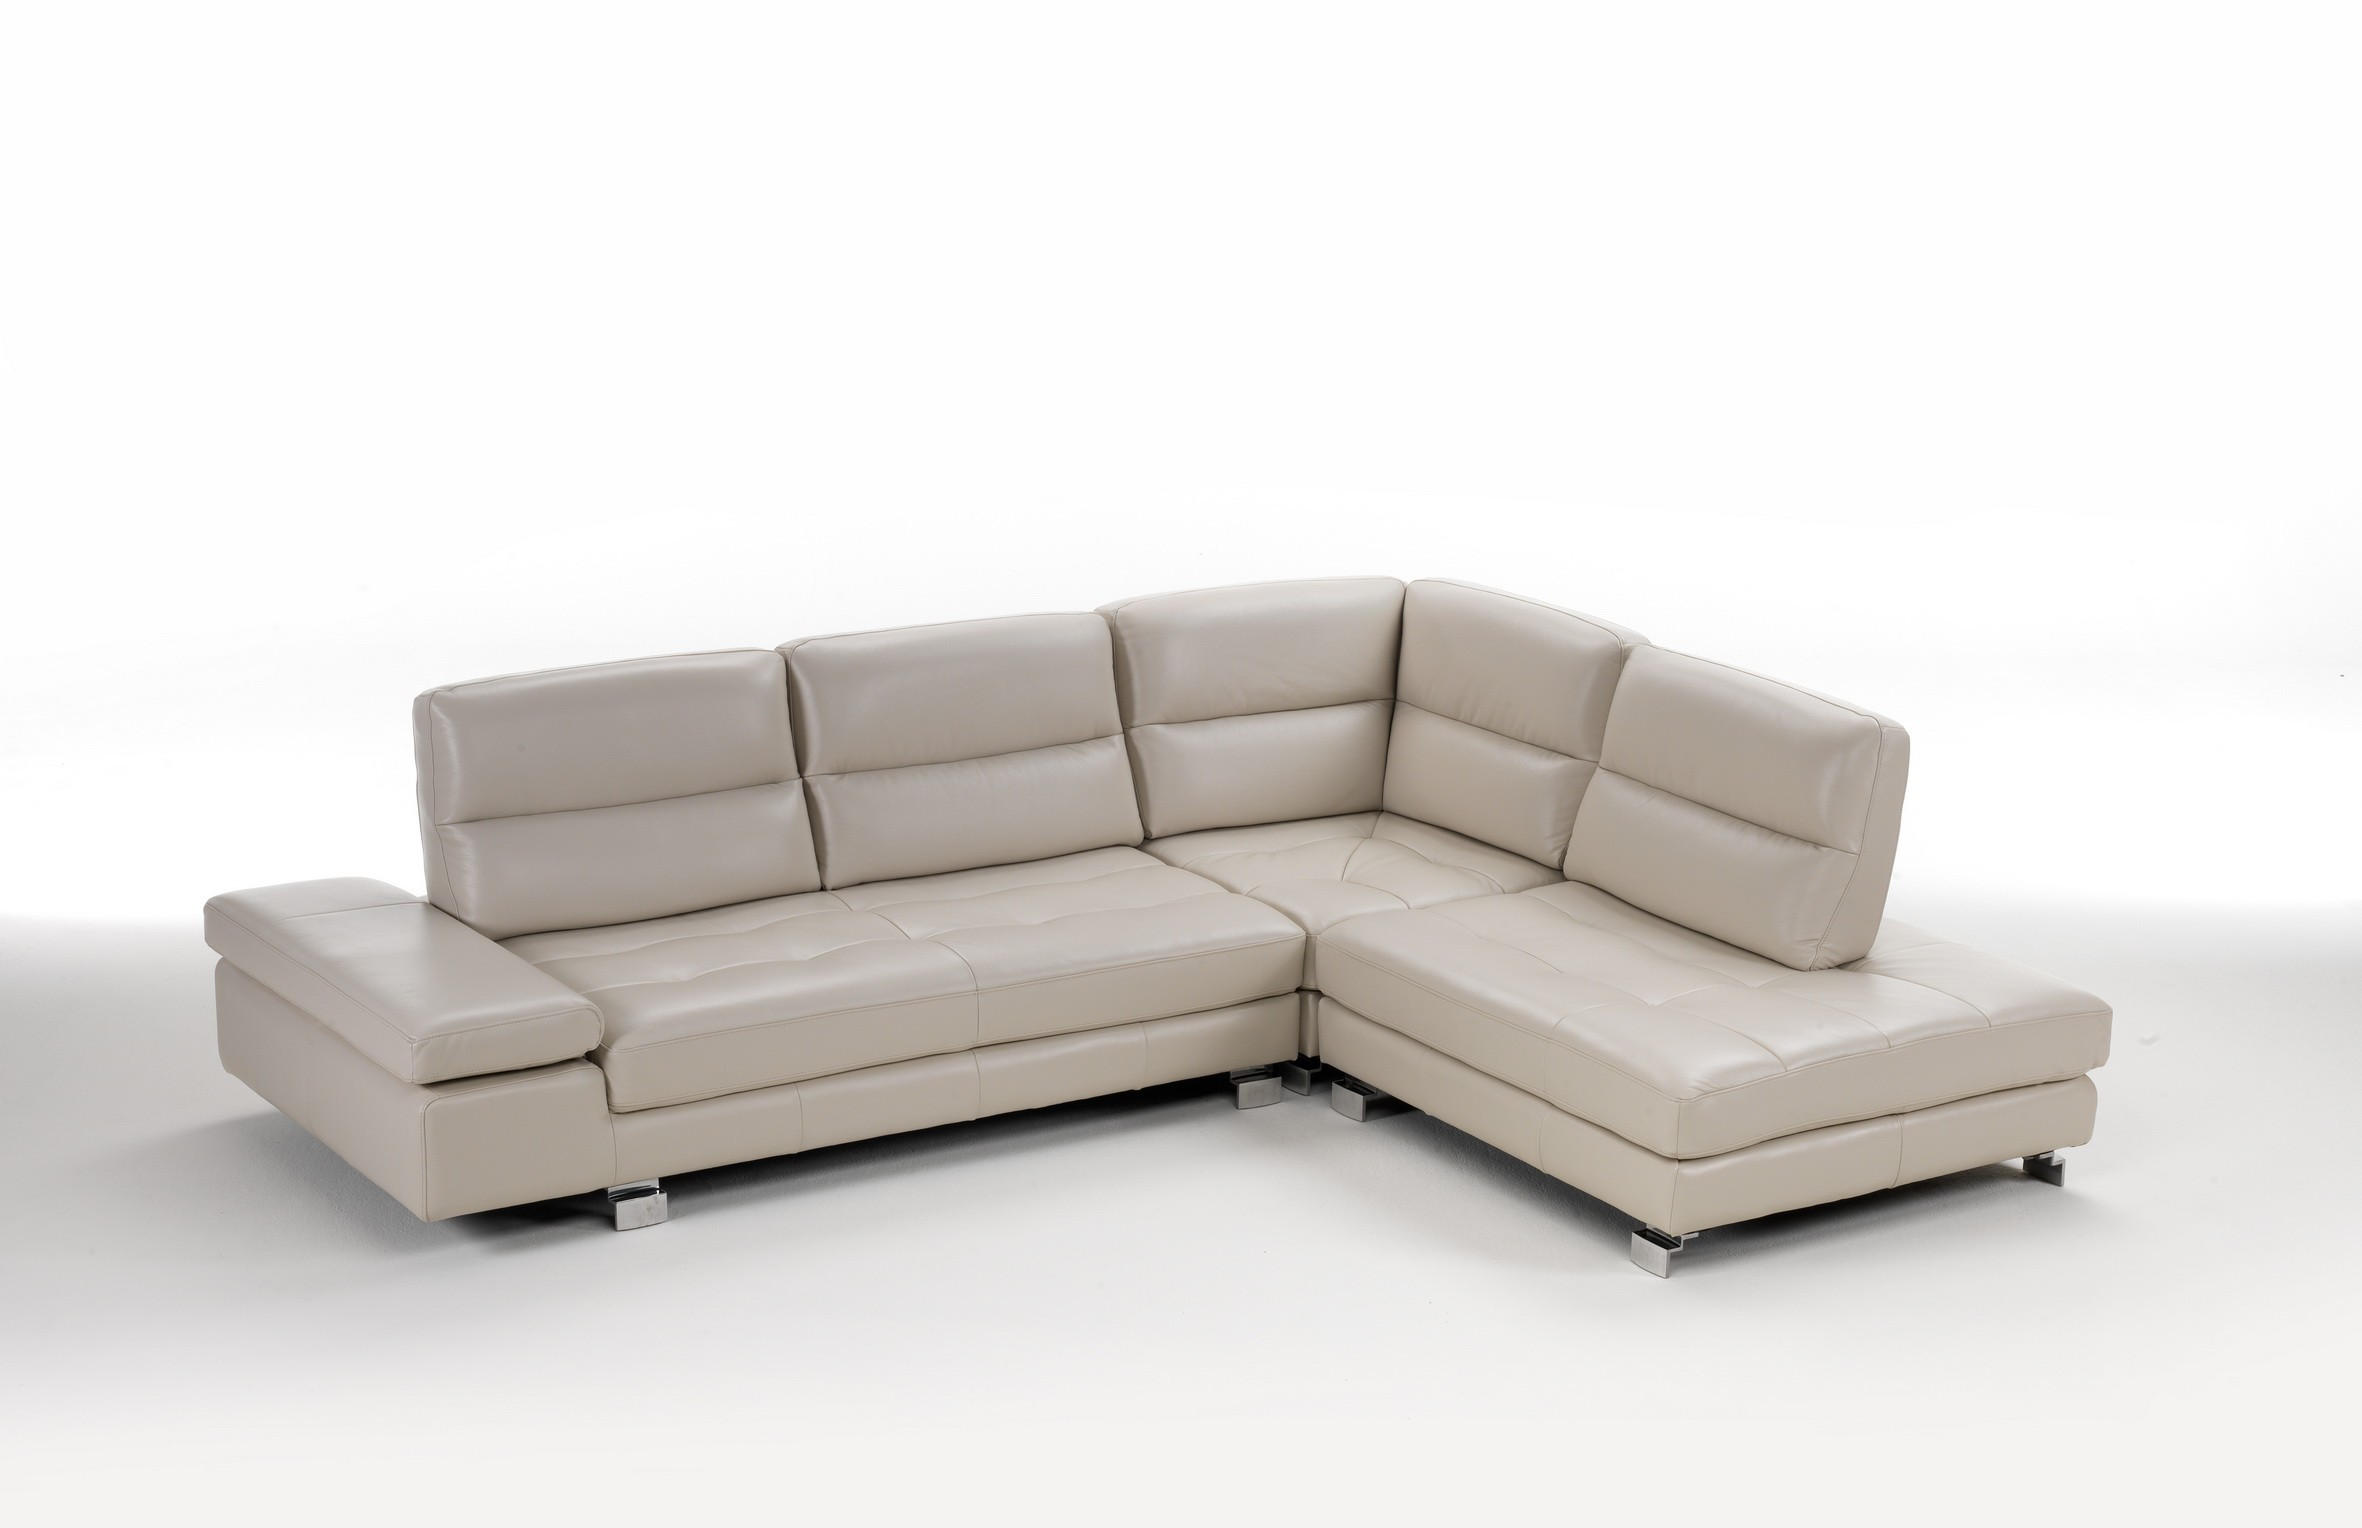 Gemma Premium Leather Sectional With Sliding Backs By Idp